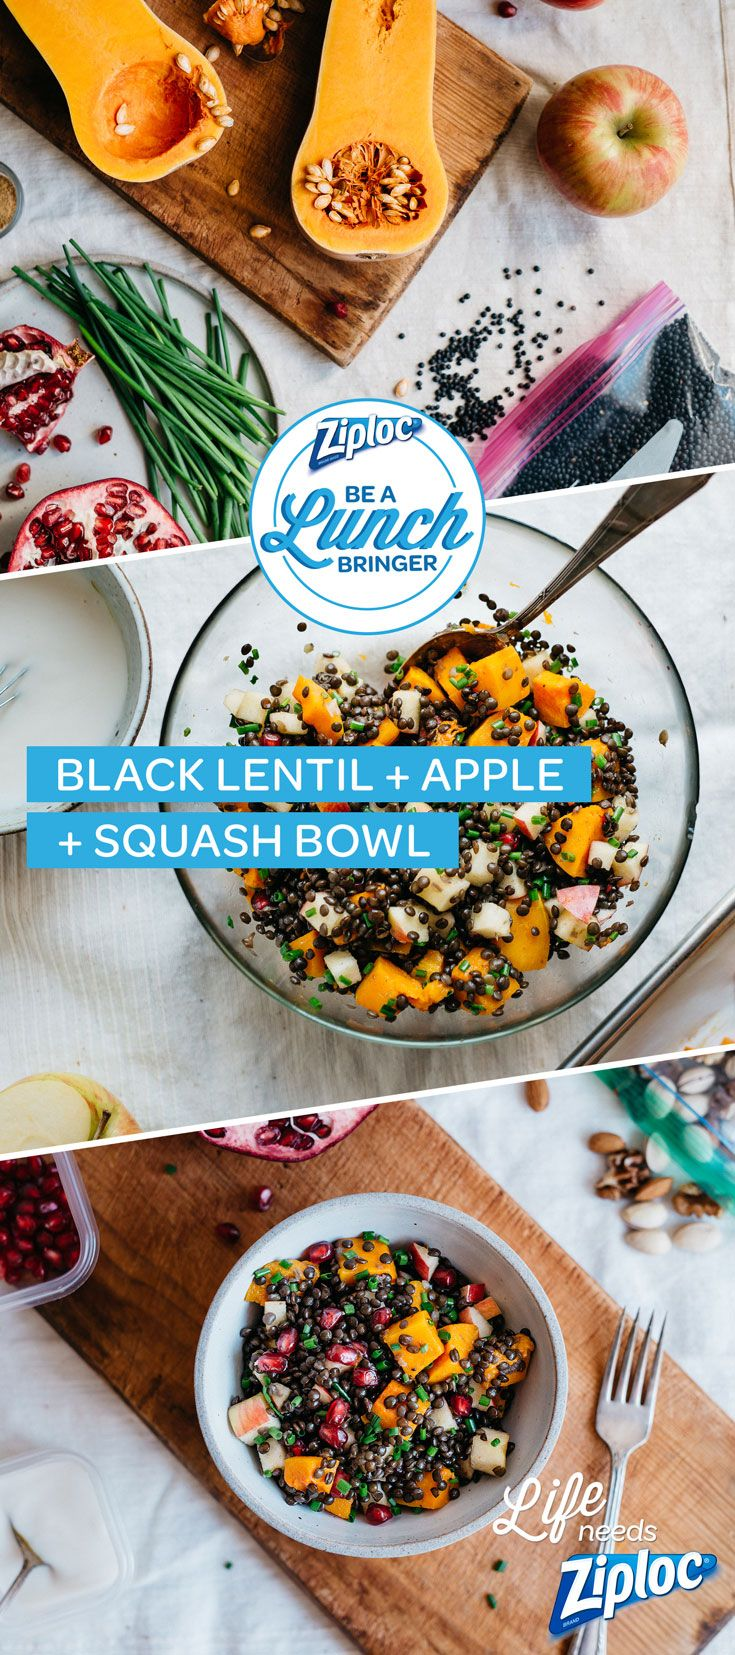 This gluten-free, vegan bowl is brimming with healthy ingredients. Chopped butternut squash, pomegranate seeds, apples, and black beluga lentils all get topped with a homemade tahini sauce. Mix some up, toss it in a Ziploc® container, and take it to work for lunch (you might want to bring extra to share).